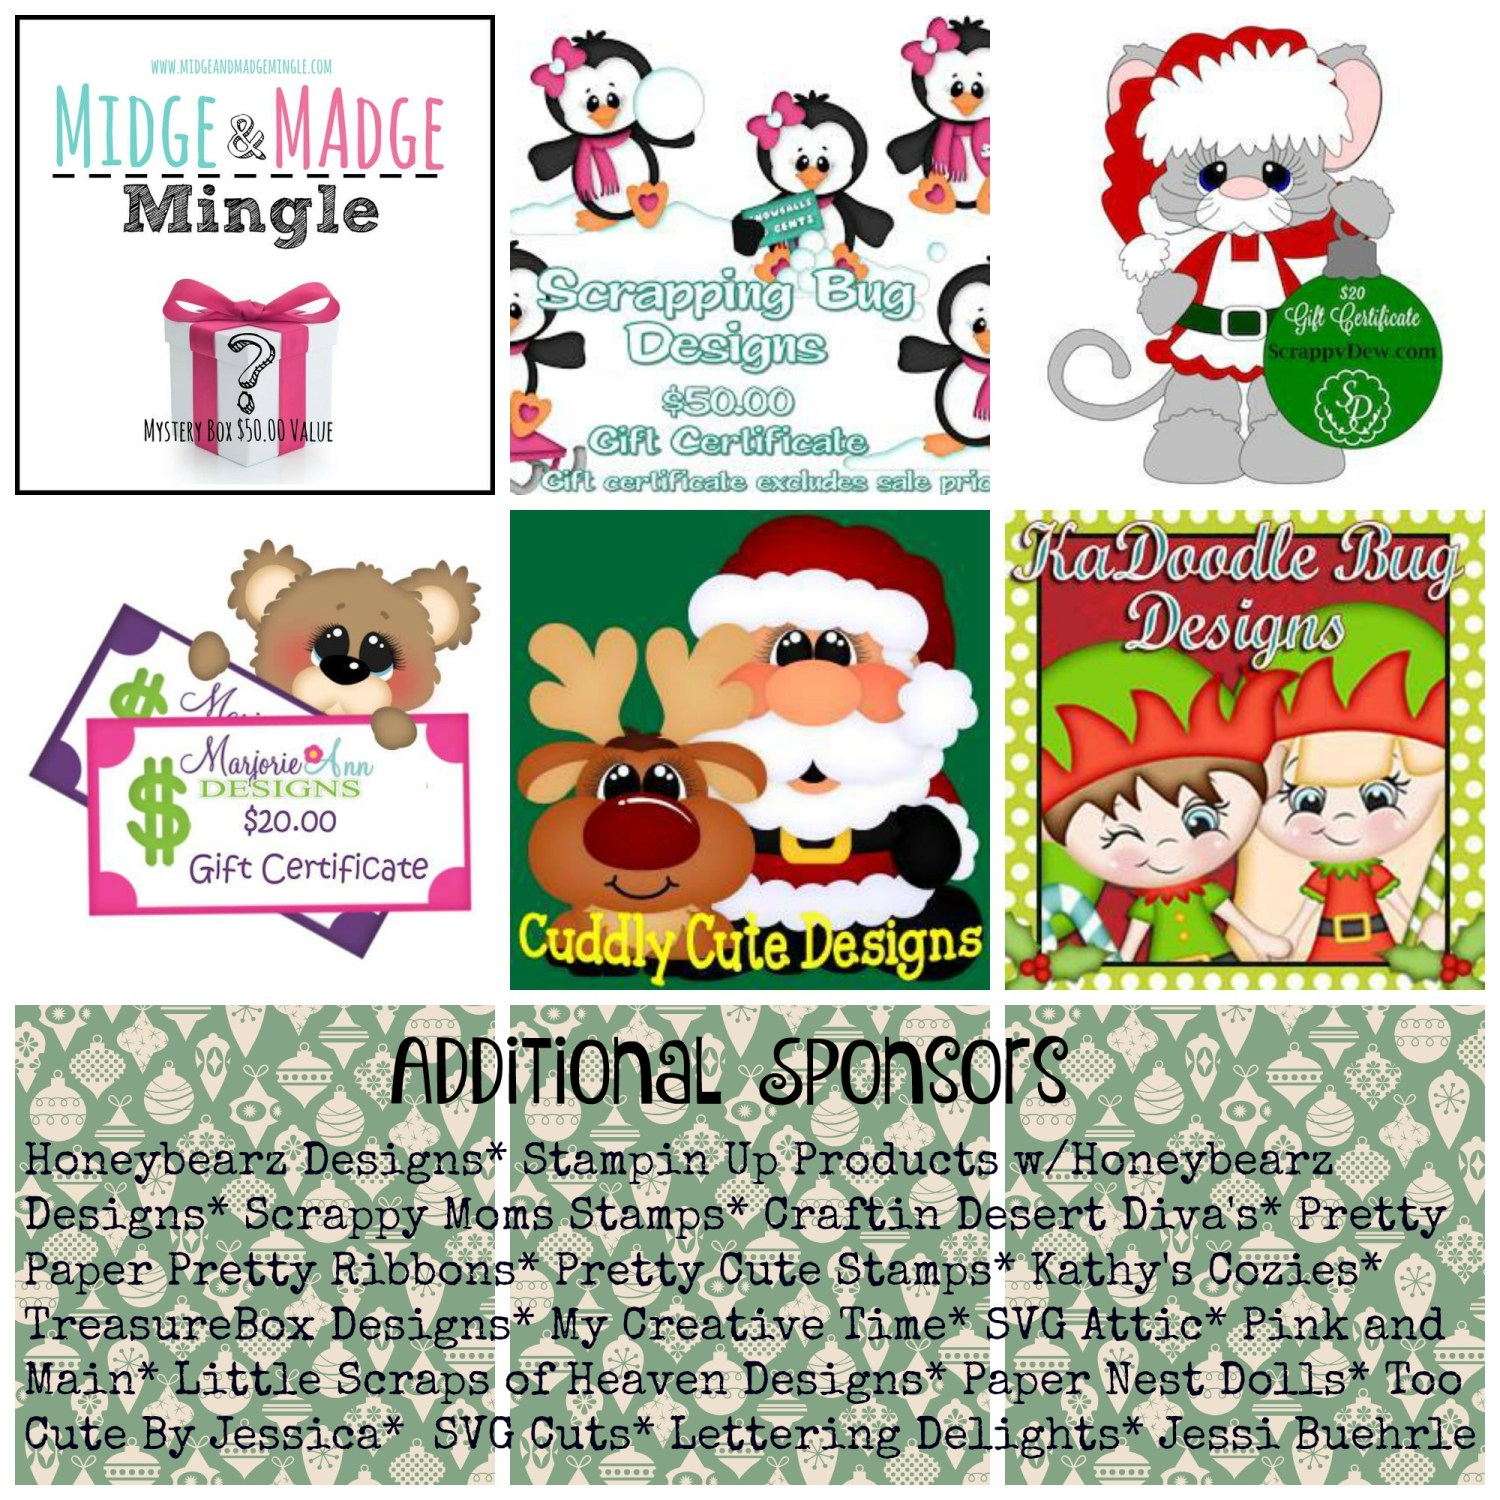 12 Days of Christmas Blog Hop Sponsor 2015